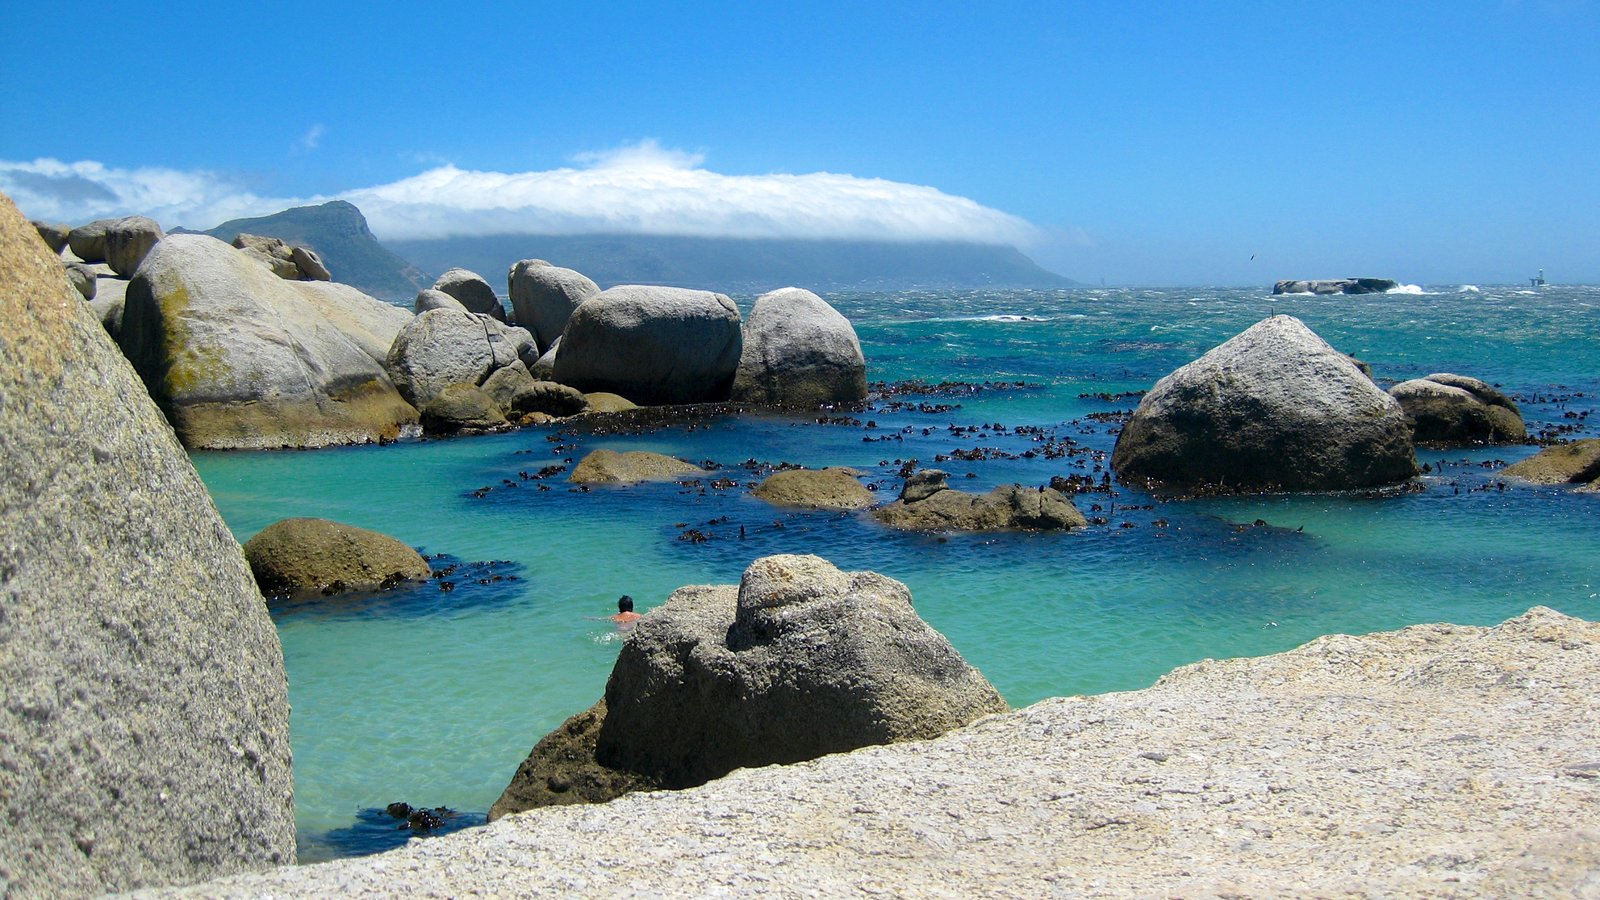 Boulders Beach featuring swimming, tropical scenes and landscape views